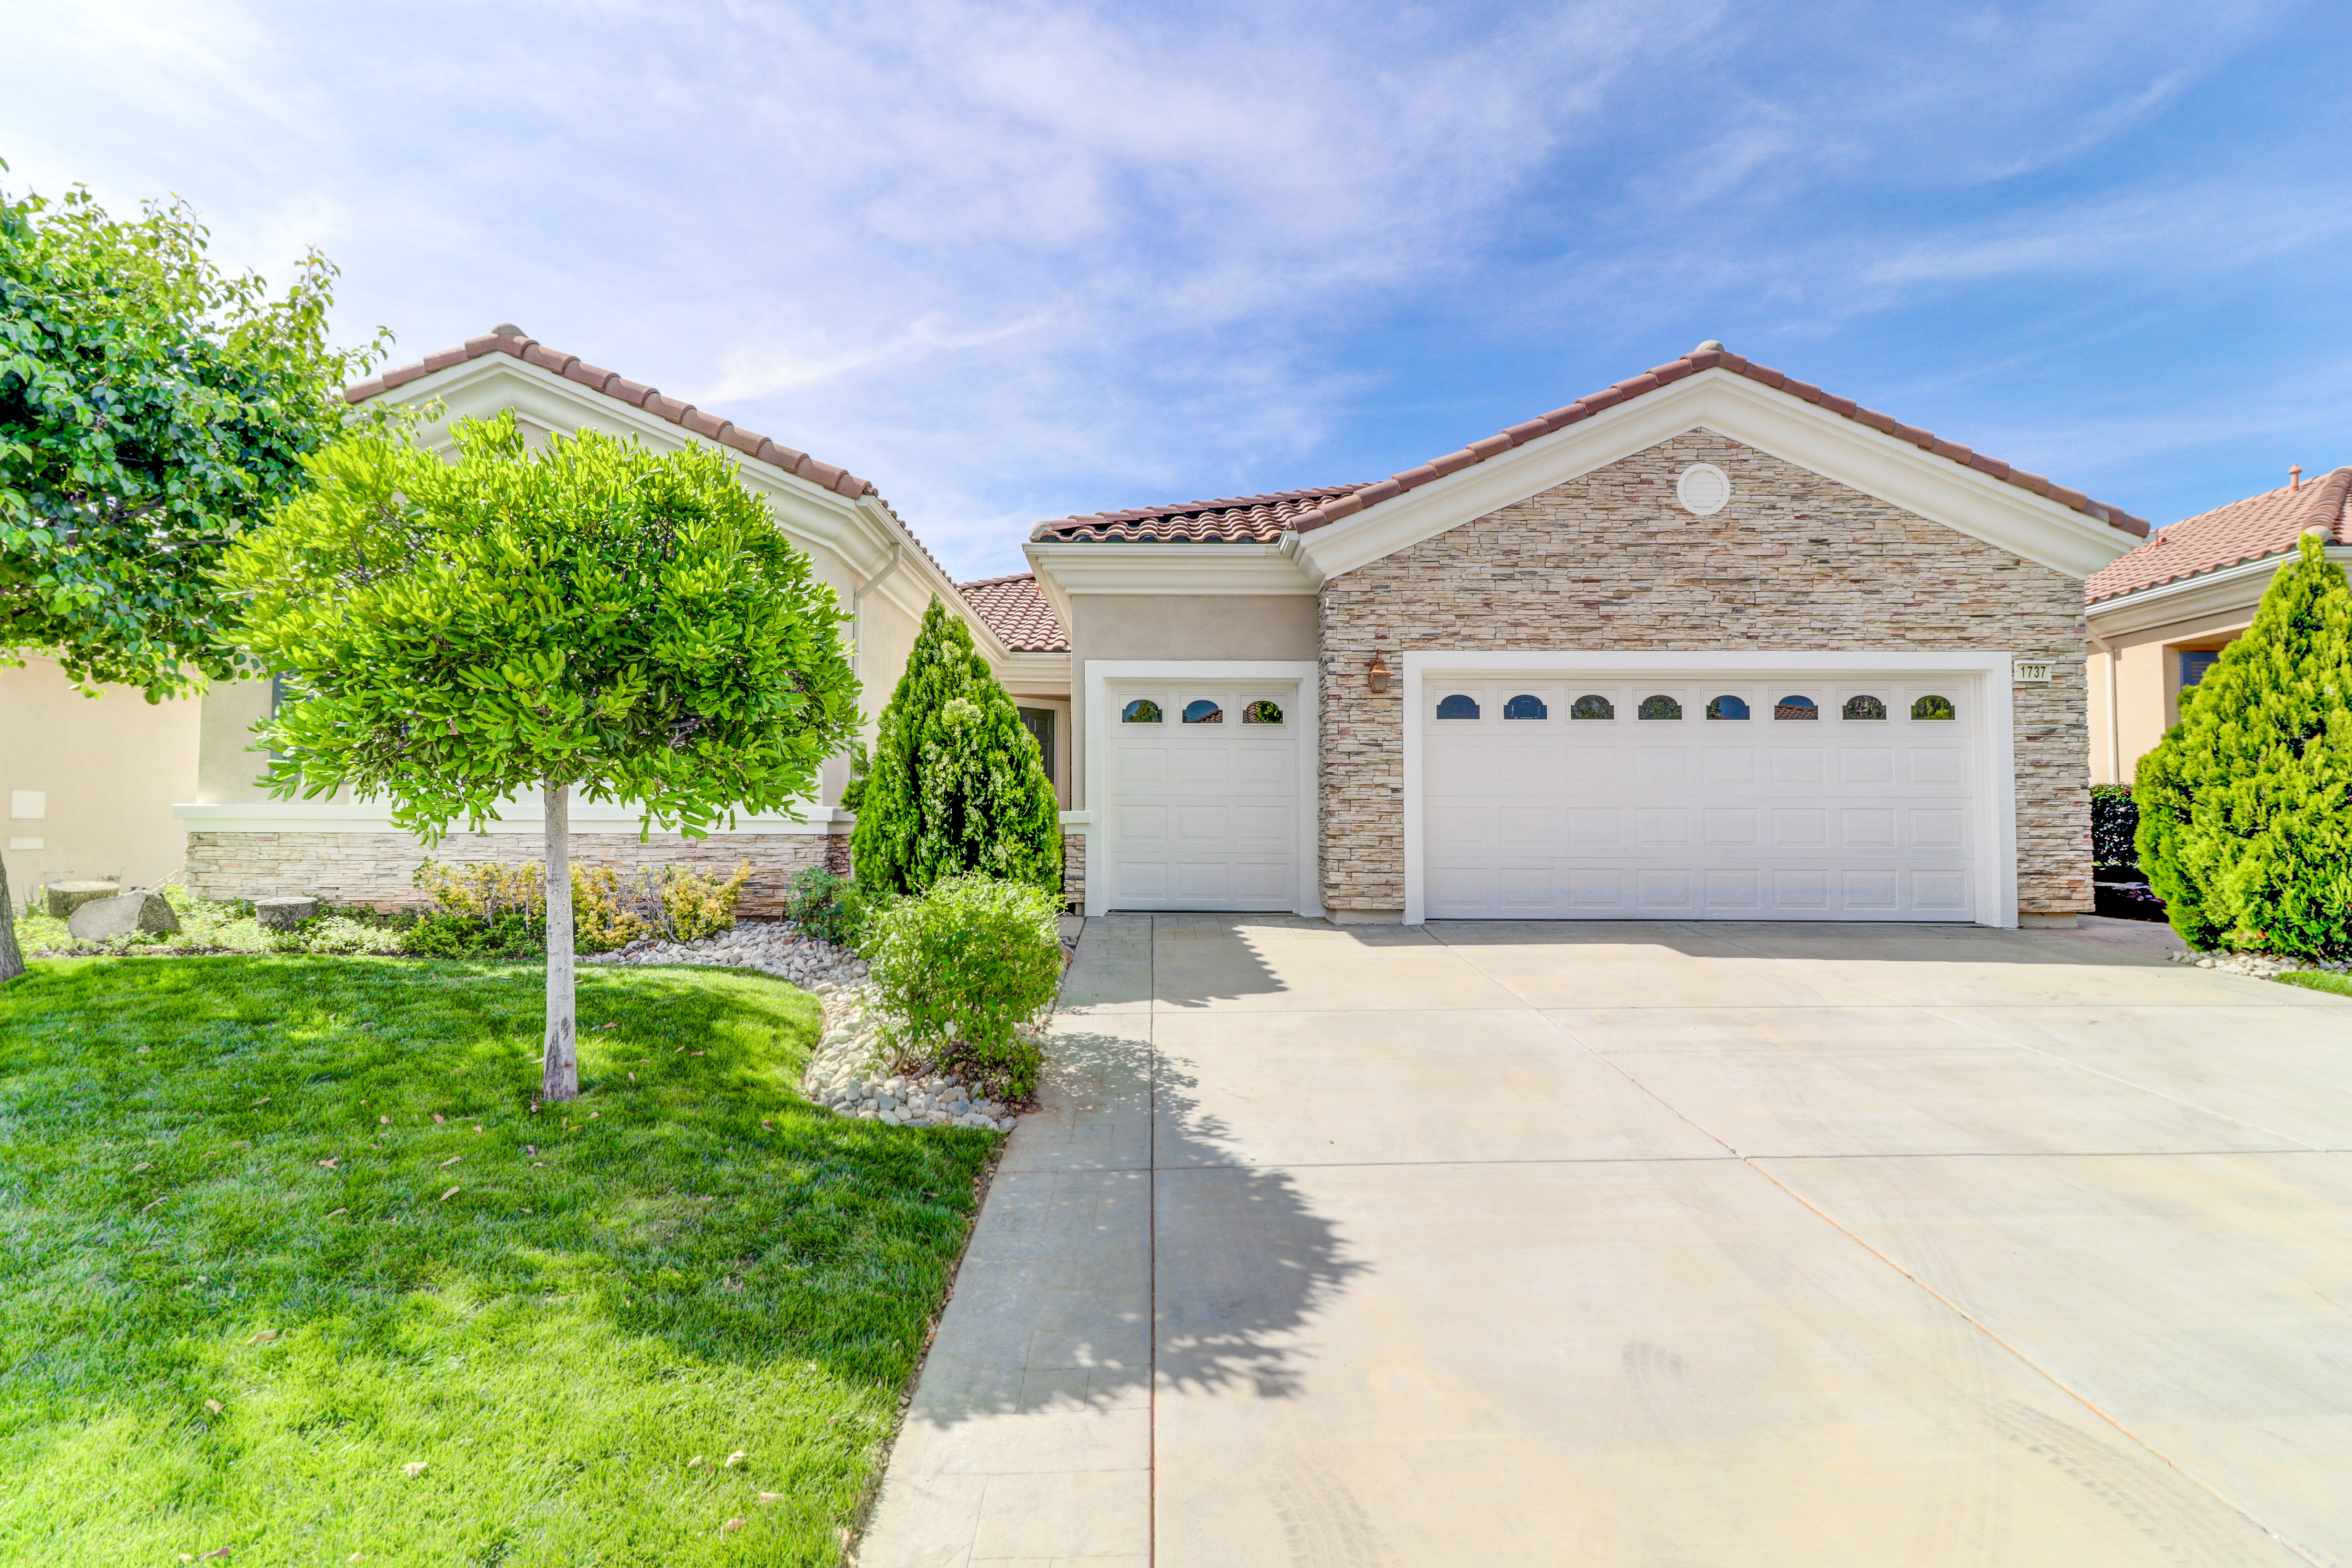 Single Family Home for sale in 1737 S. Forest Oaks Dr., Beaumont, California ,92223